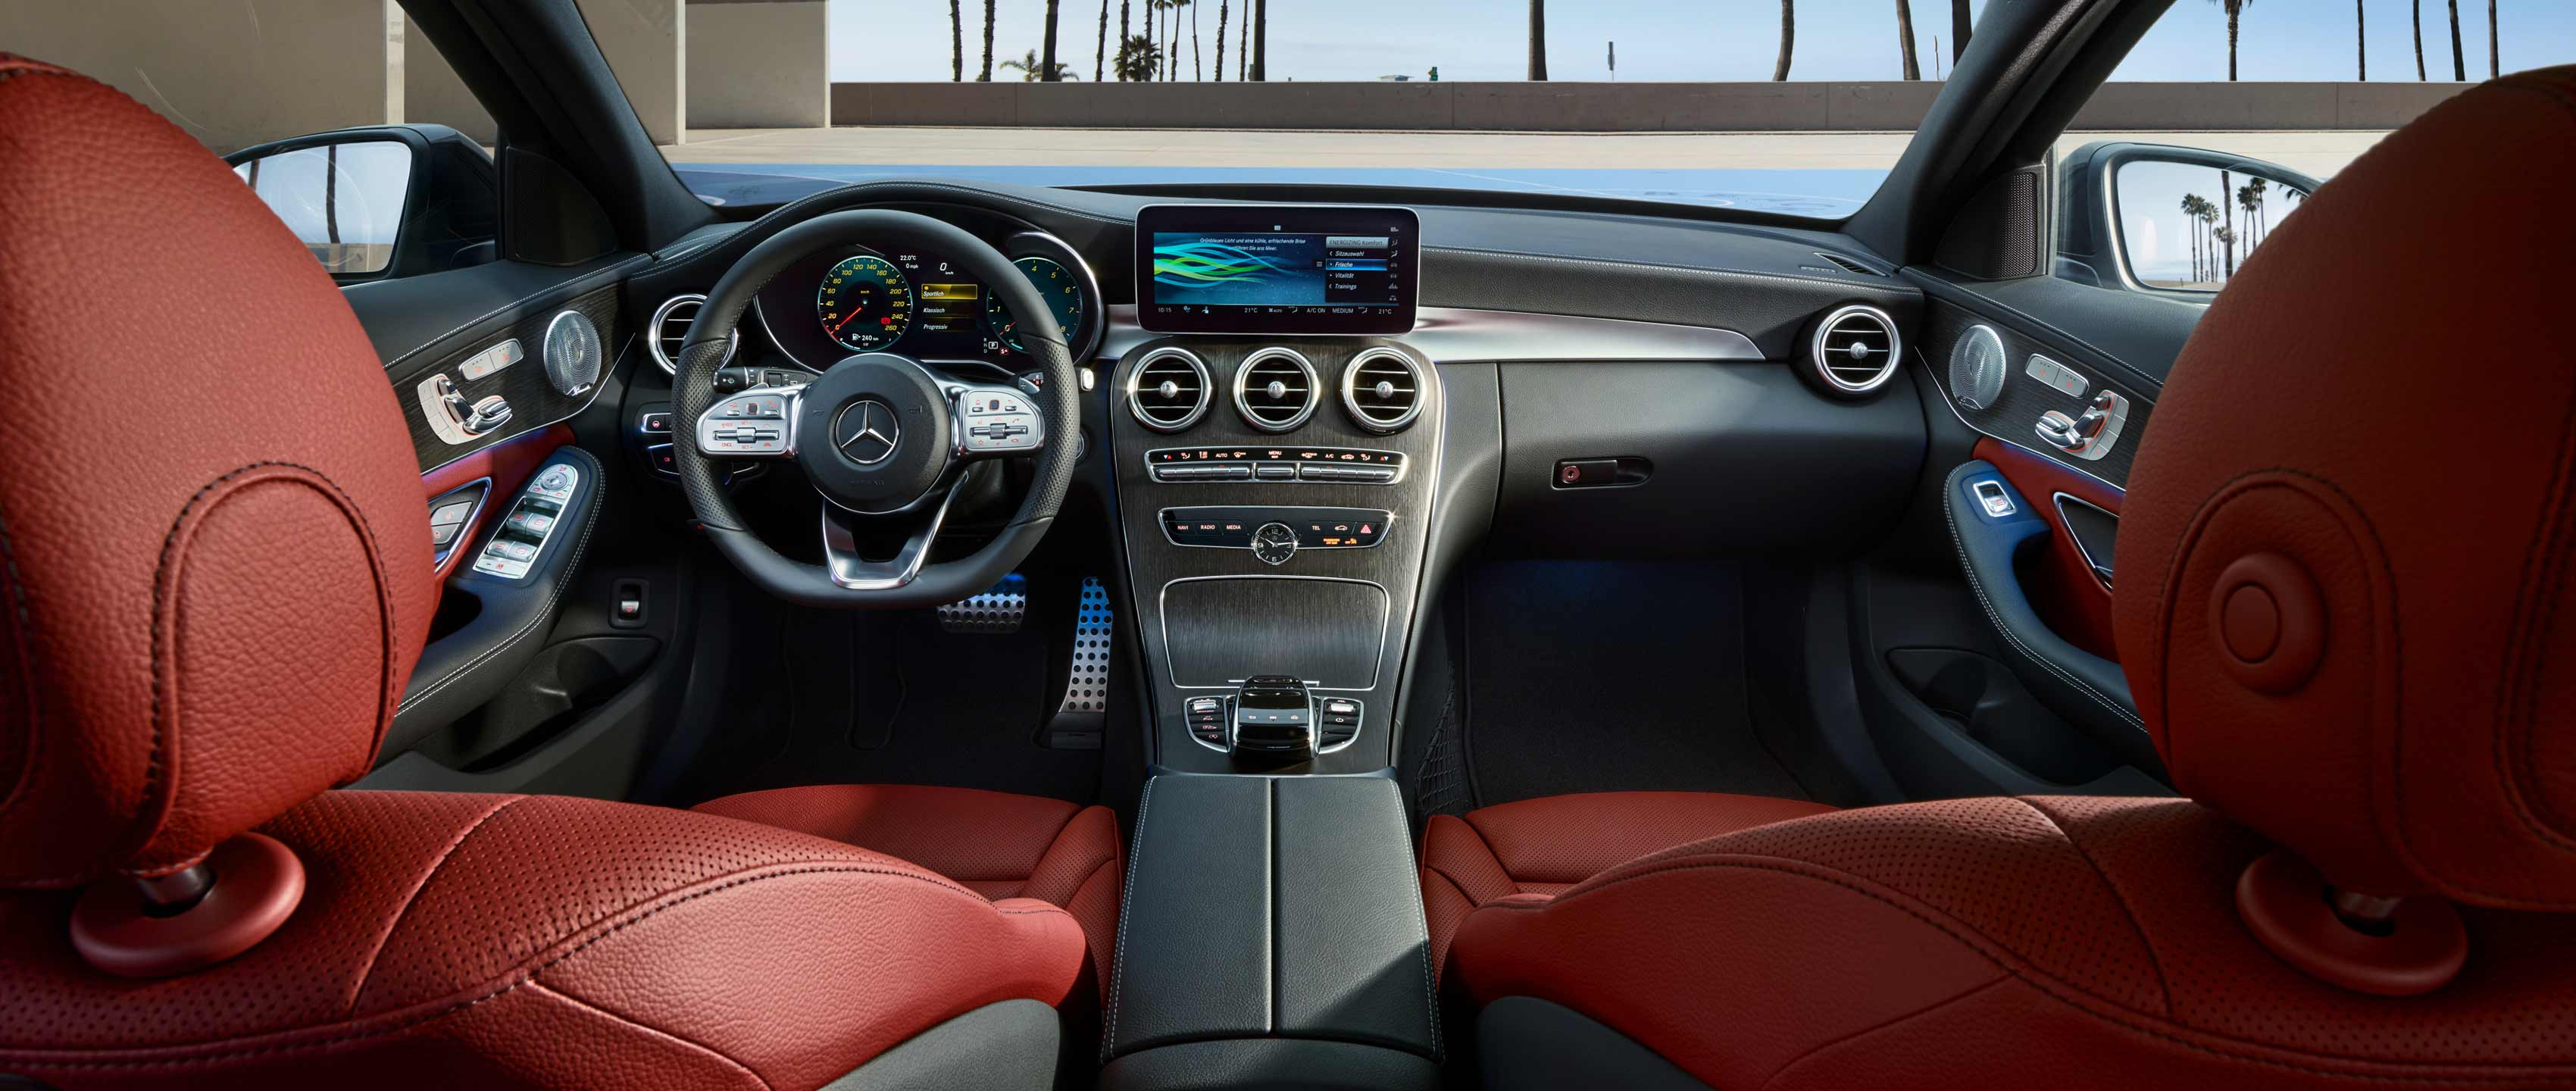 30 All New Mercedes C 2019 Interior New Model And Performance